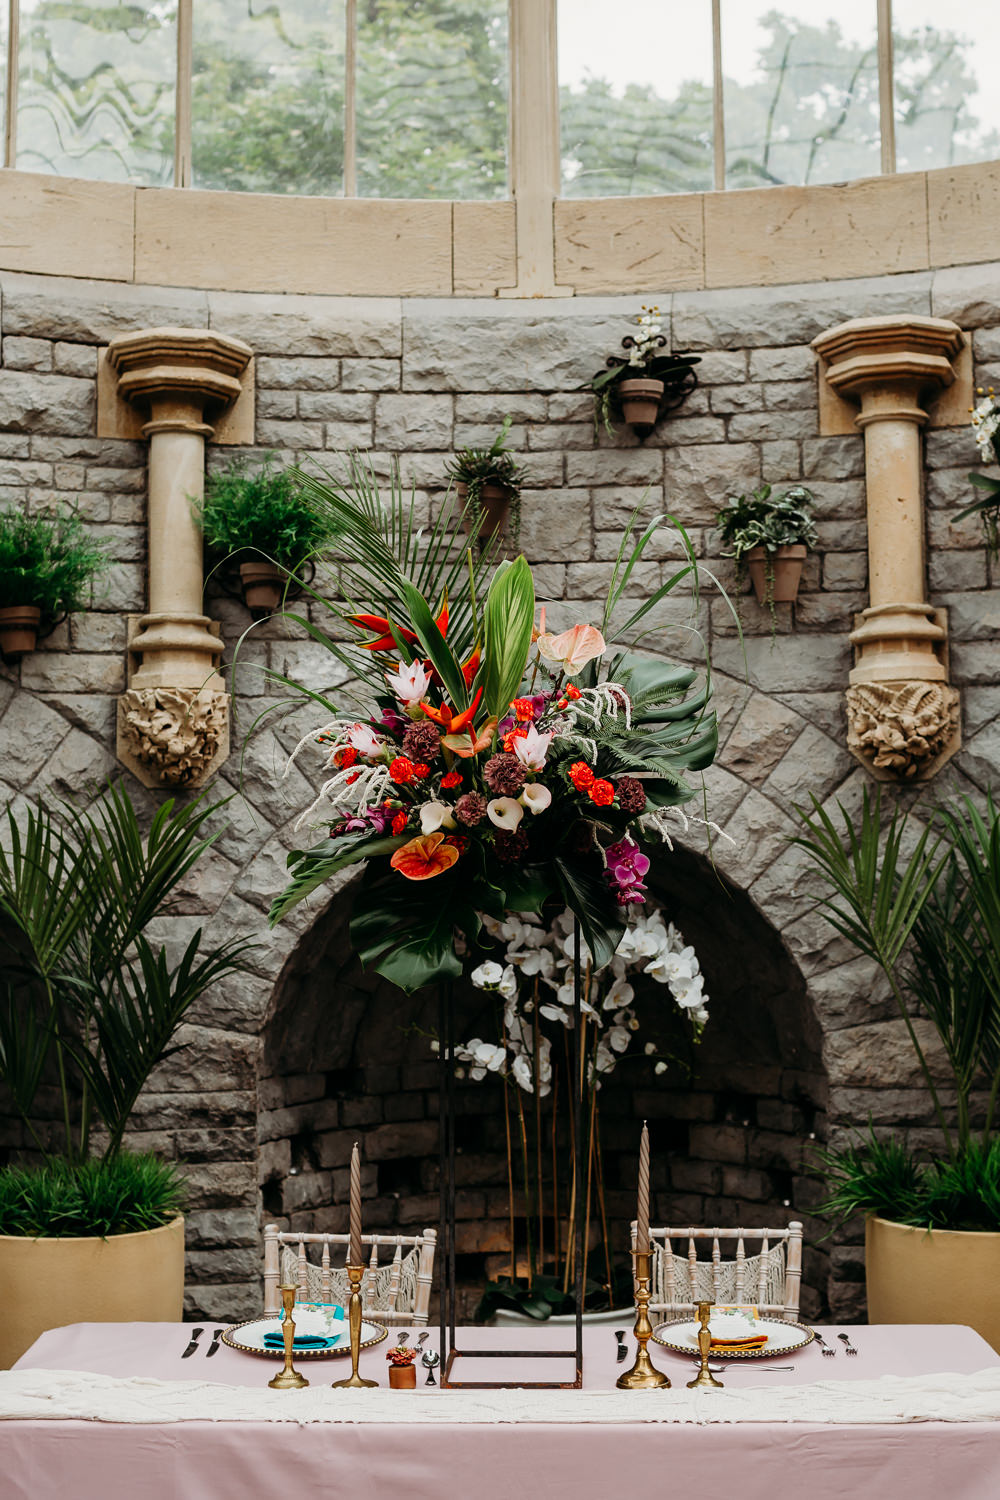 Flower Arrangement Tall Centrepiece Metal Palm Leaf Birds of Paradise Protea Hanging Orchids Anthurium Tropical Wedding Ideas When Charlie Met Hannah